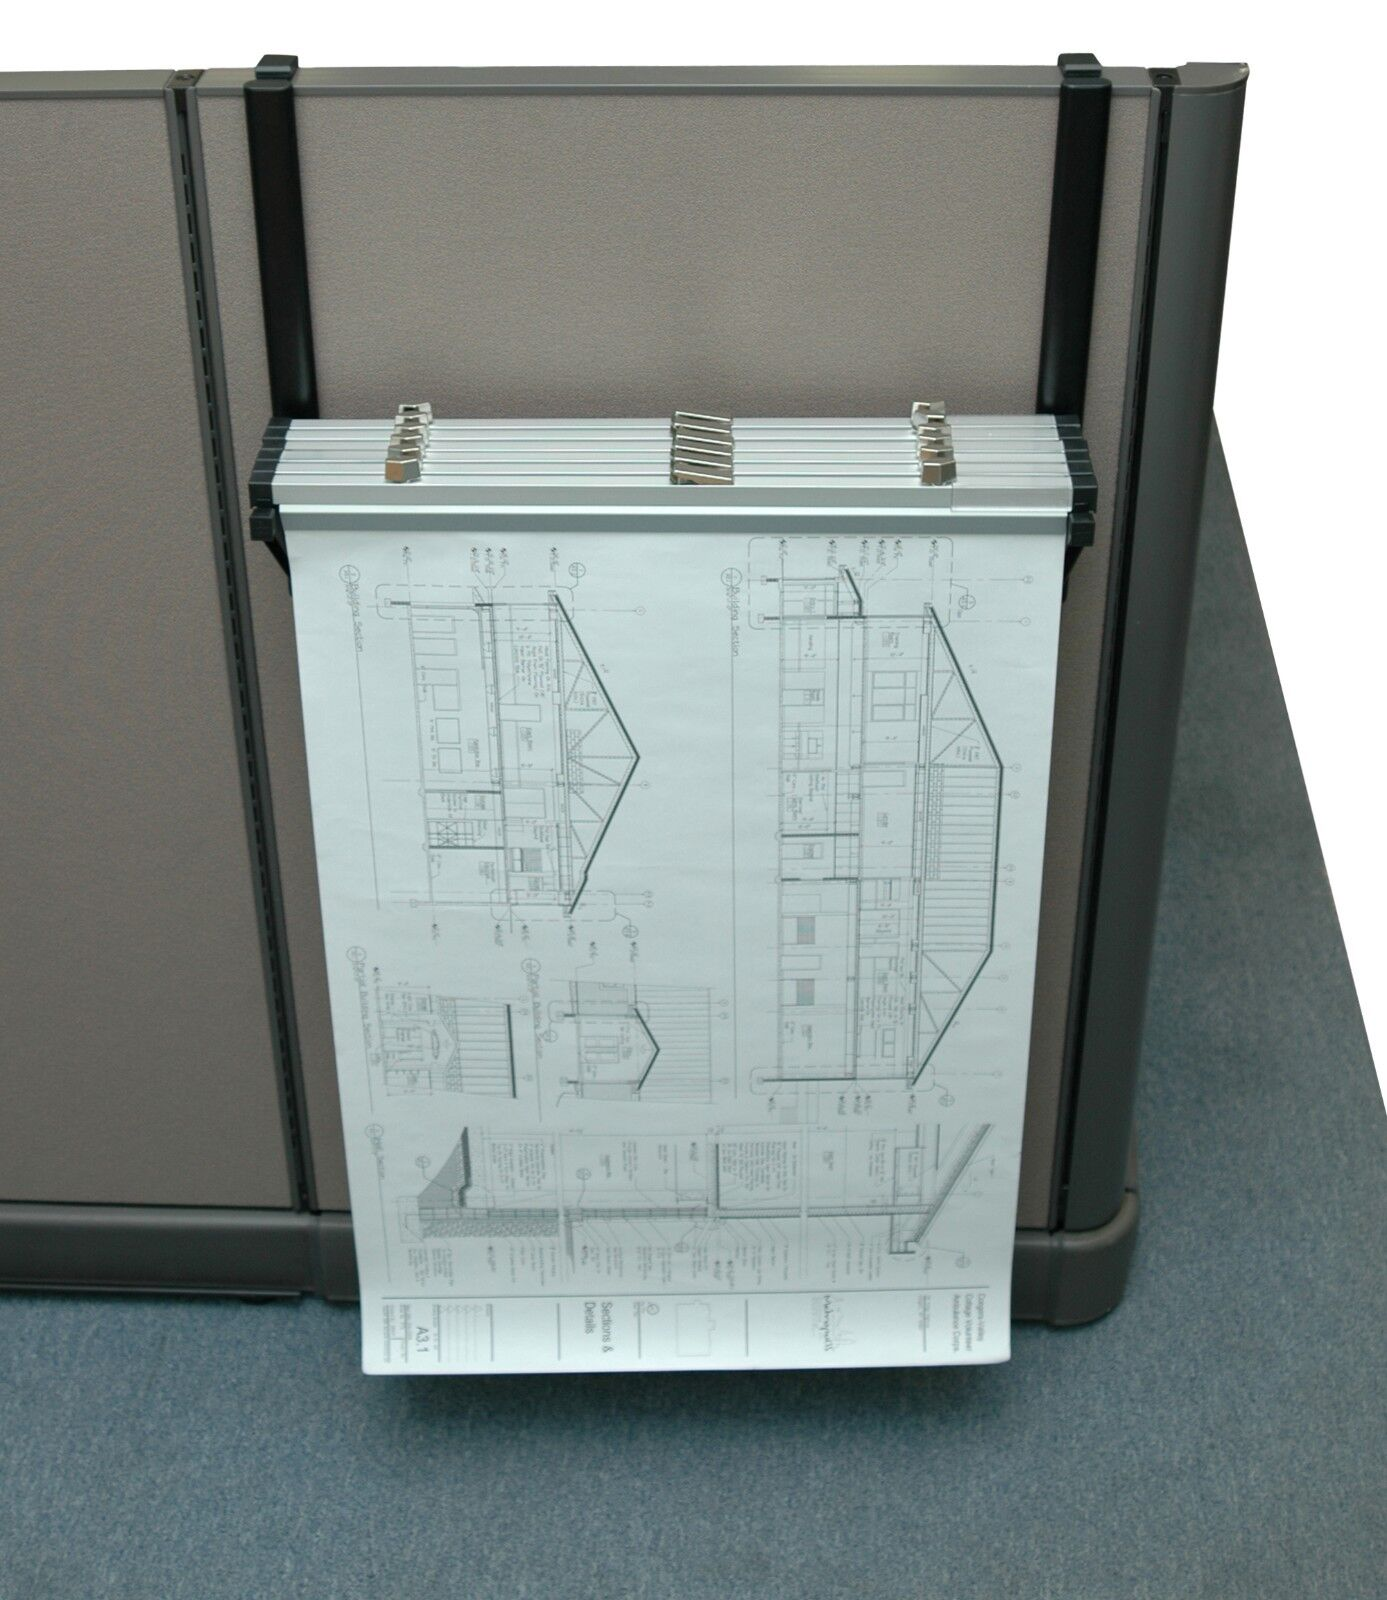 Details About Adiroffice Cubicle Rack For Blueprints Hanging Clamps Plans Posters 618